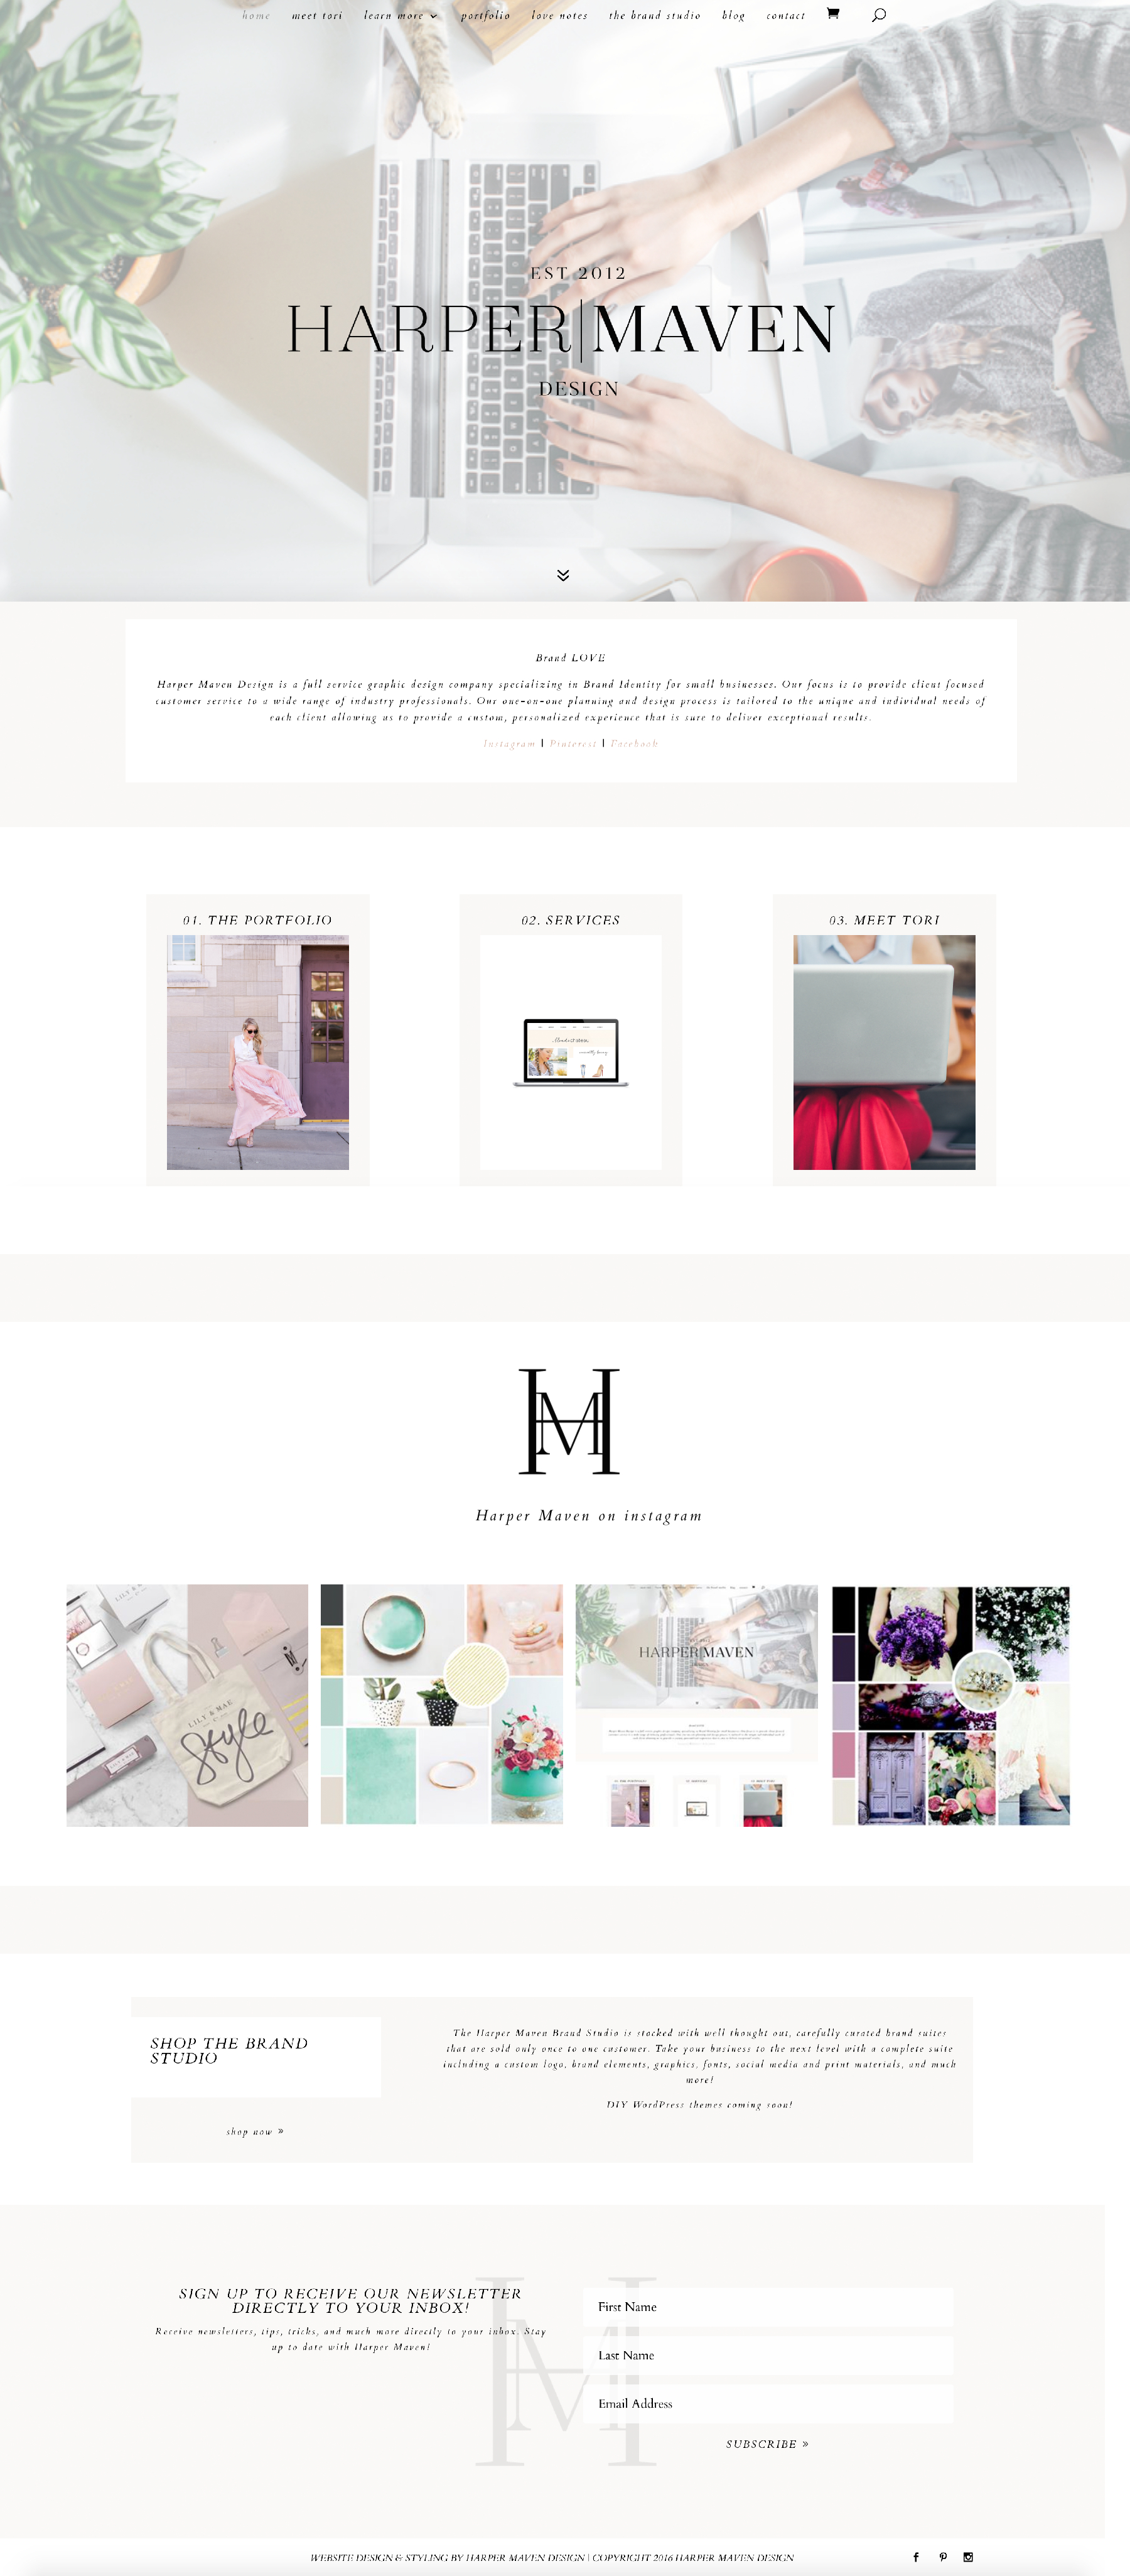 Harper Maven Design Website | - #apple | Apple Store | Pinterest